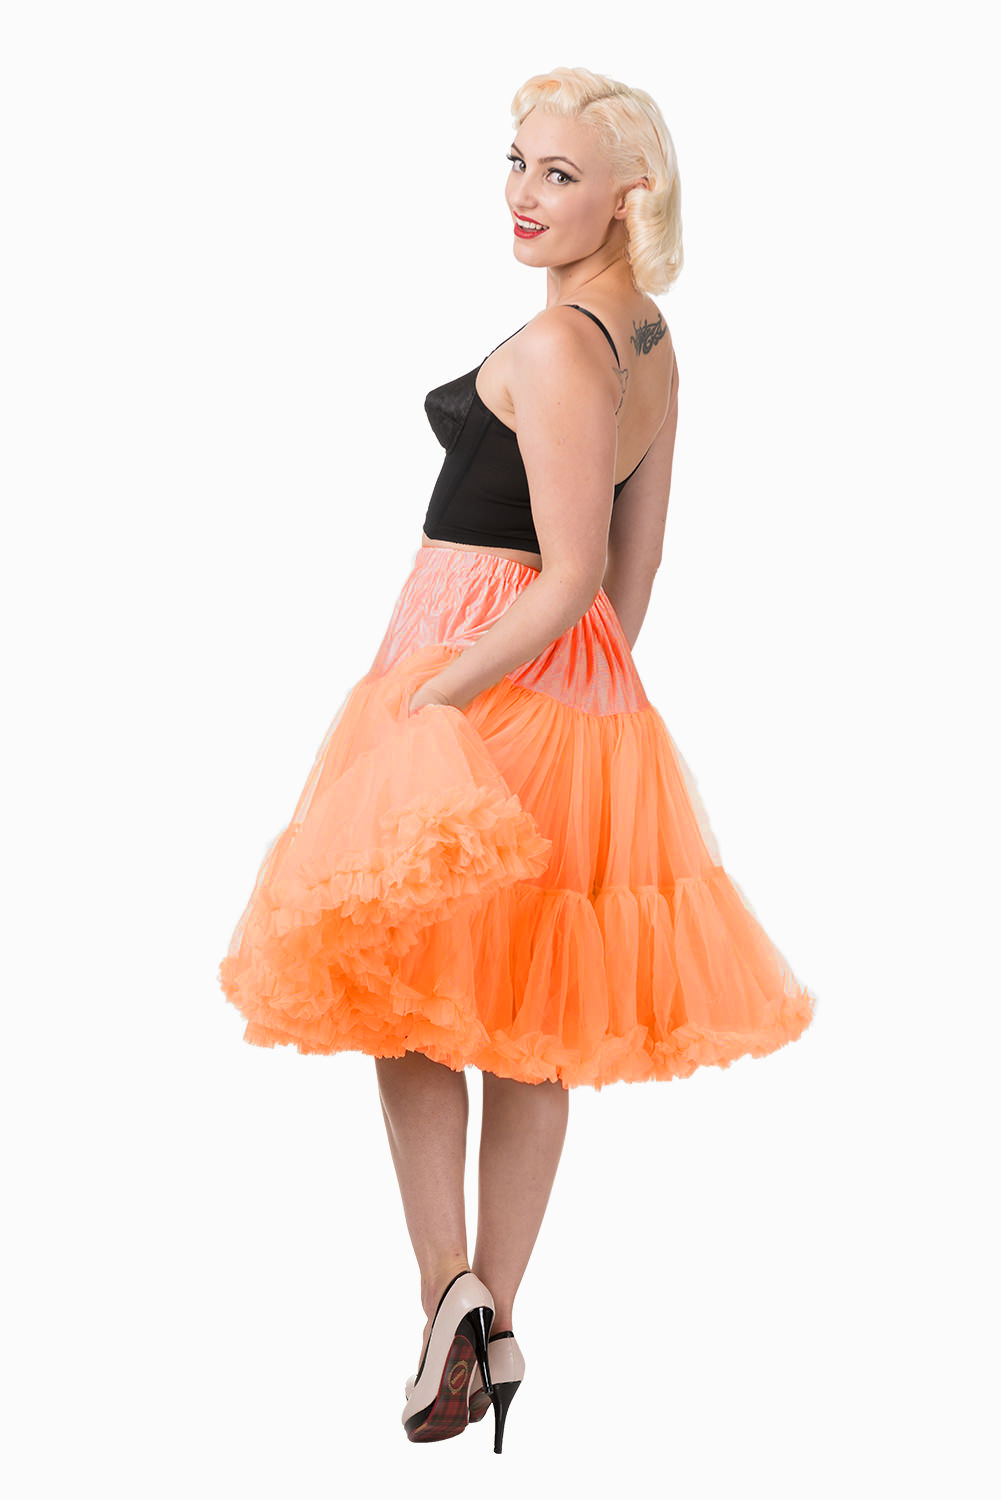 Banned Retro 50s Starlite Orange Petticoat